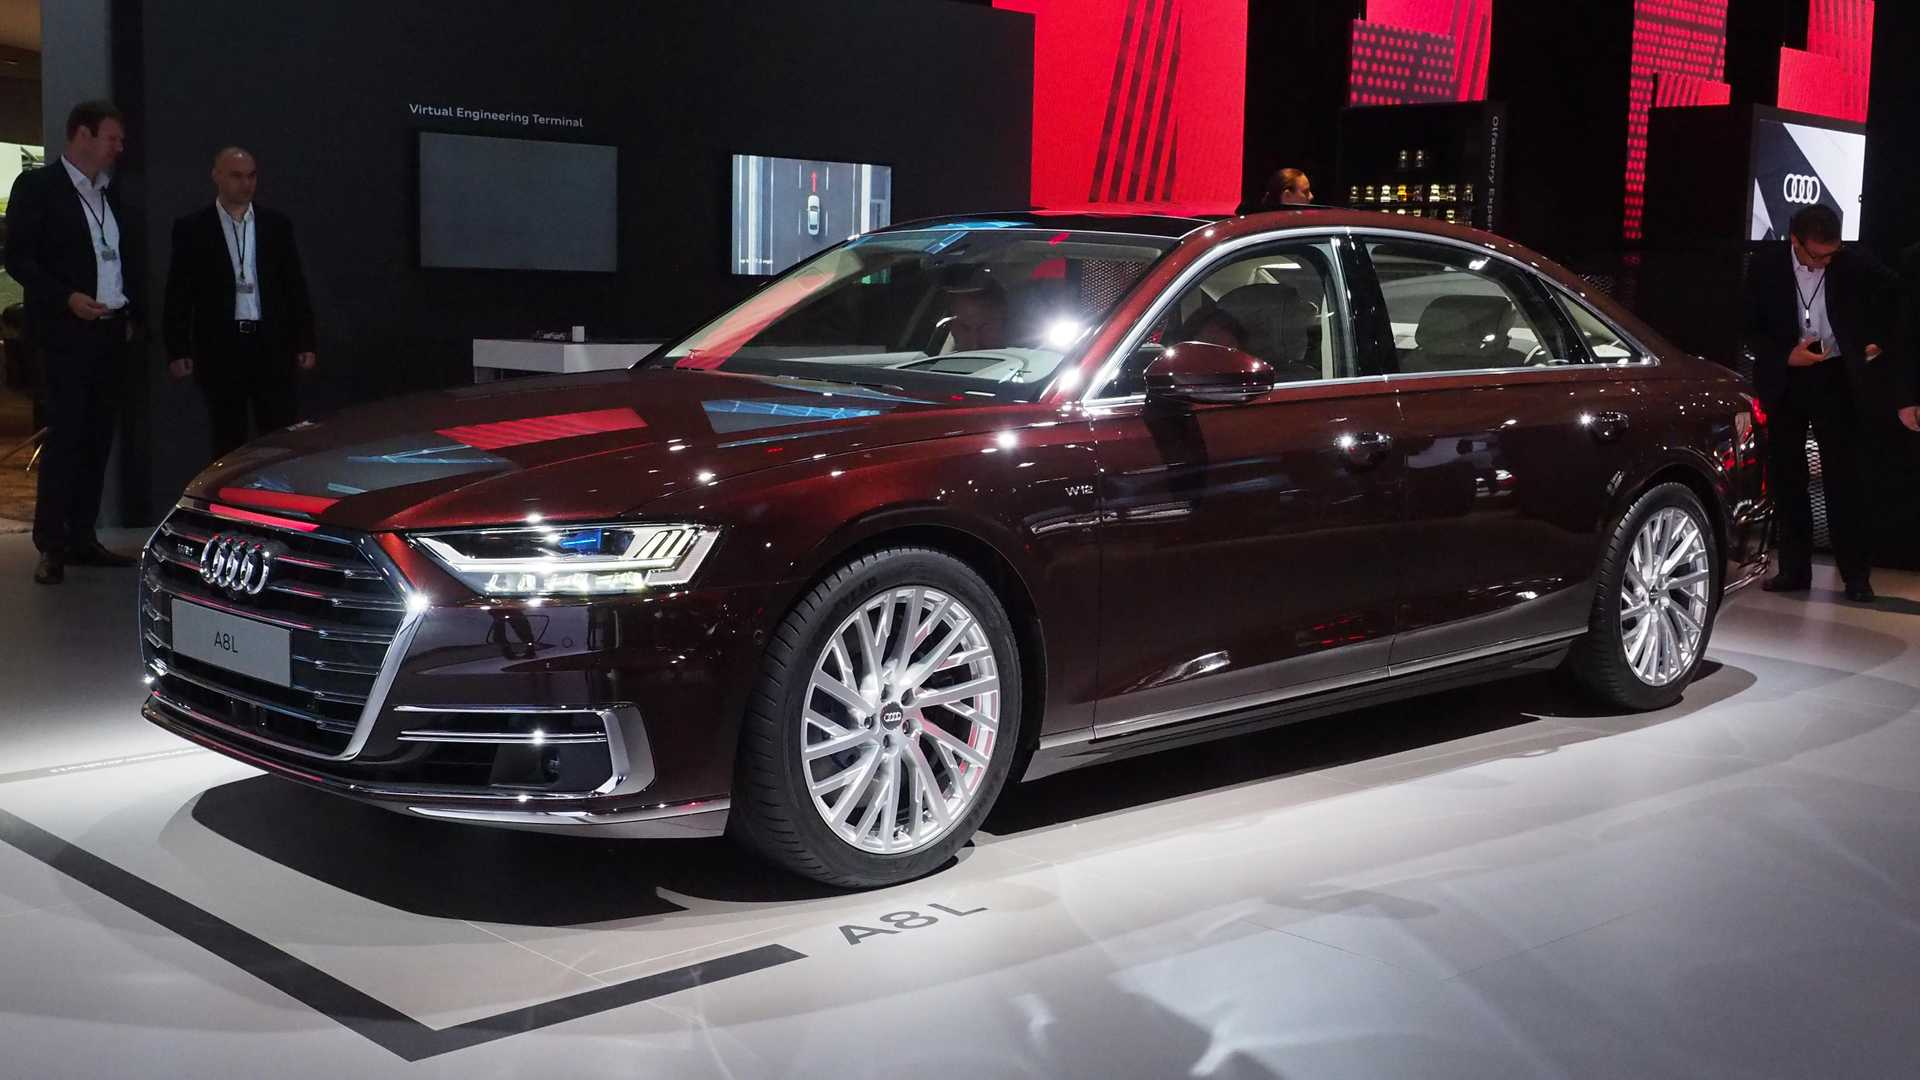 60 The 2019 Audi A8 L In Usa New Concept